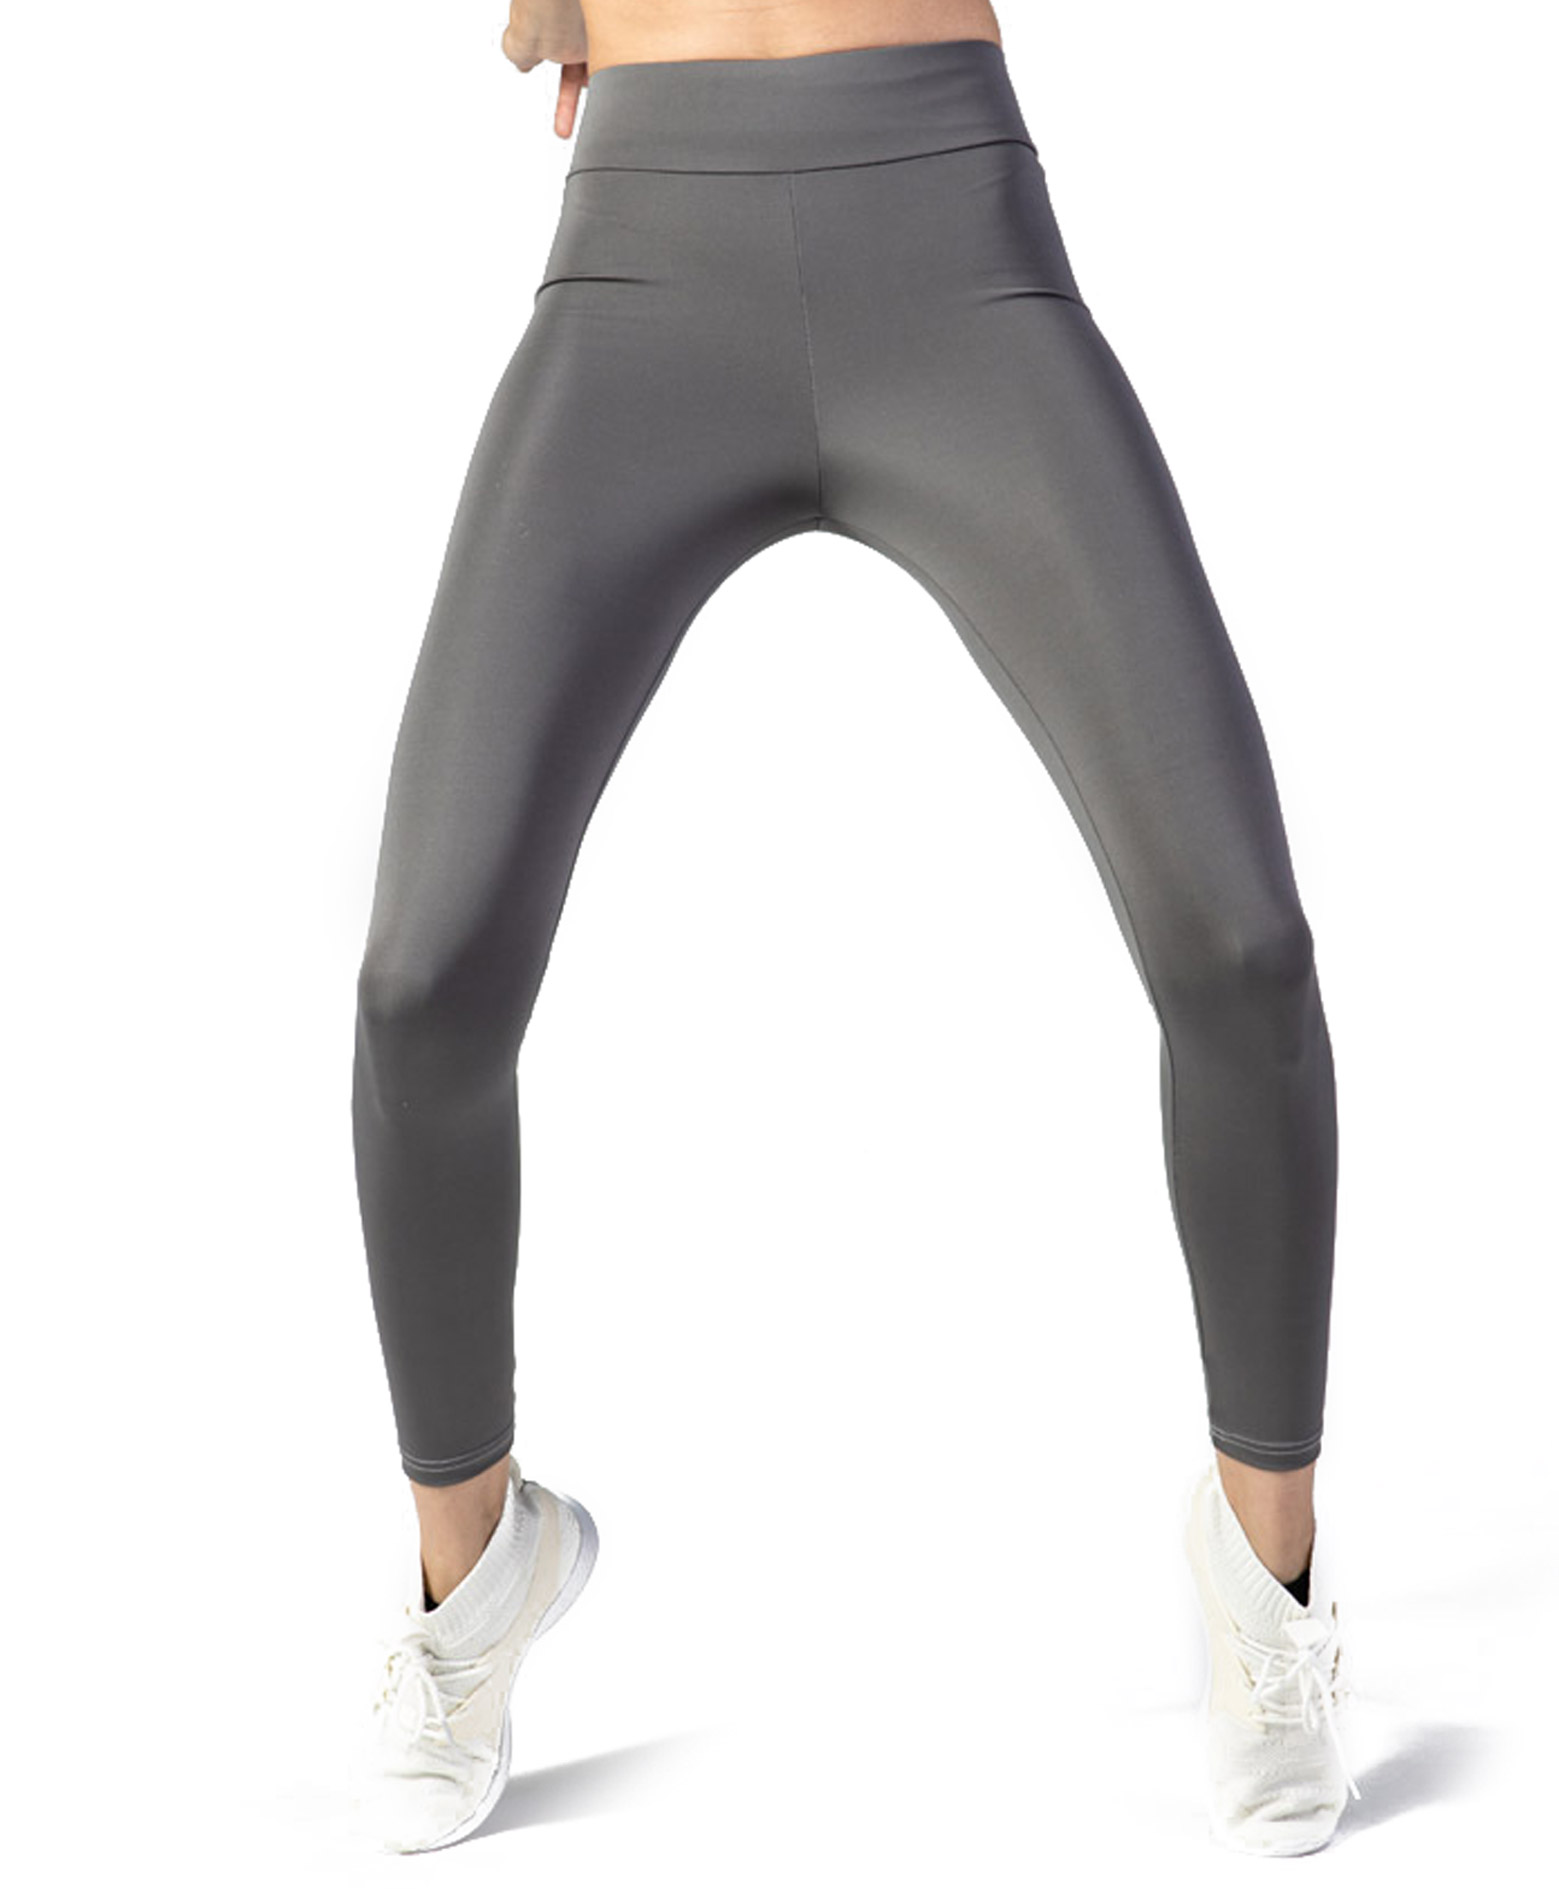 GSA HYDRO+ UP_FIT PERFORMANCE 17-28034-06 CHARCOAL Ανθρακί